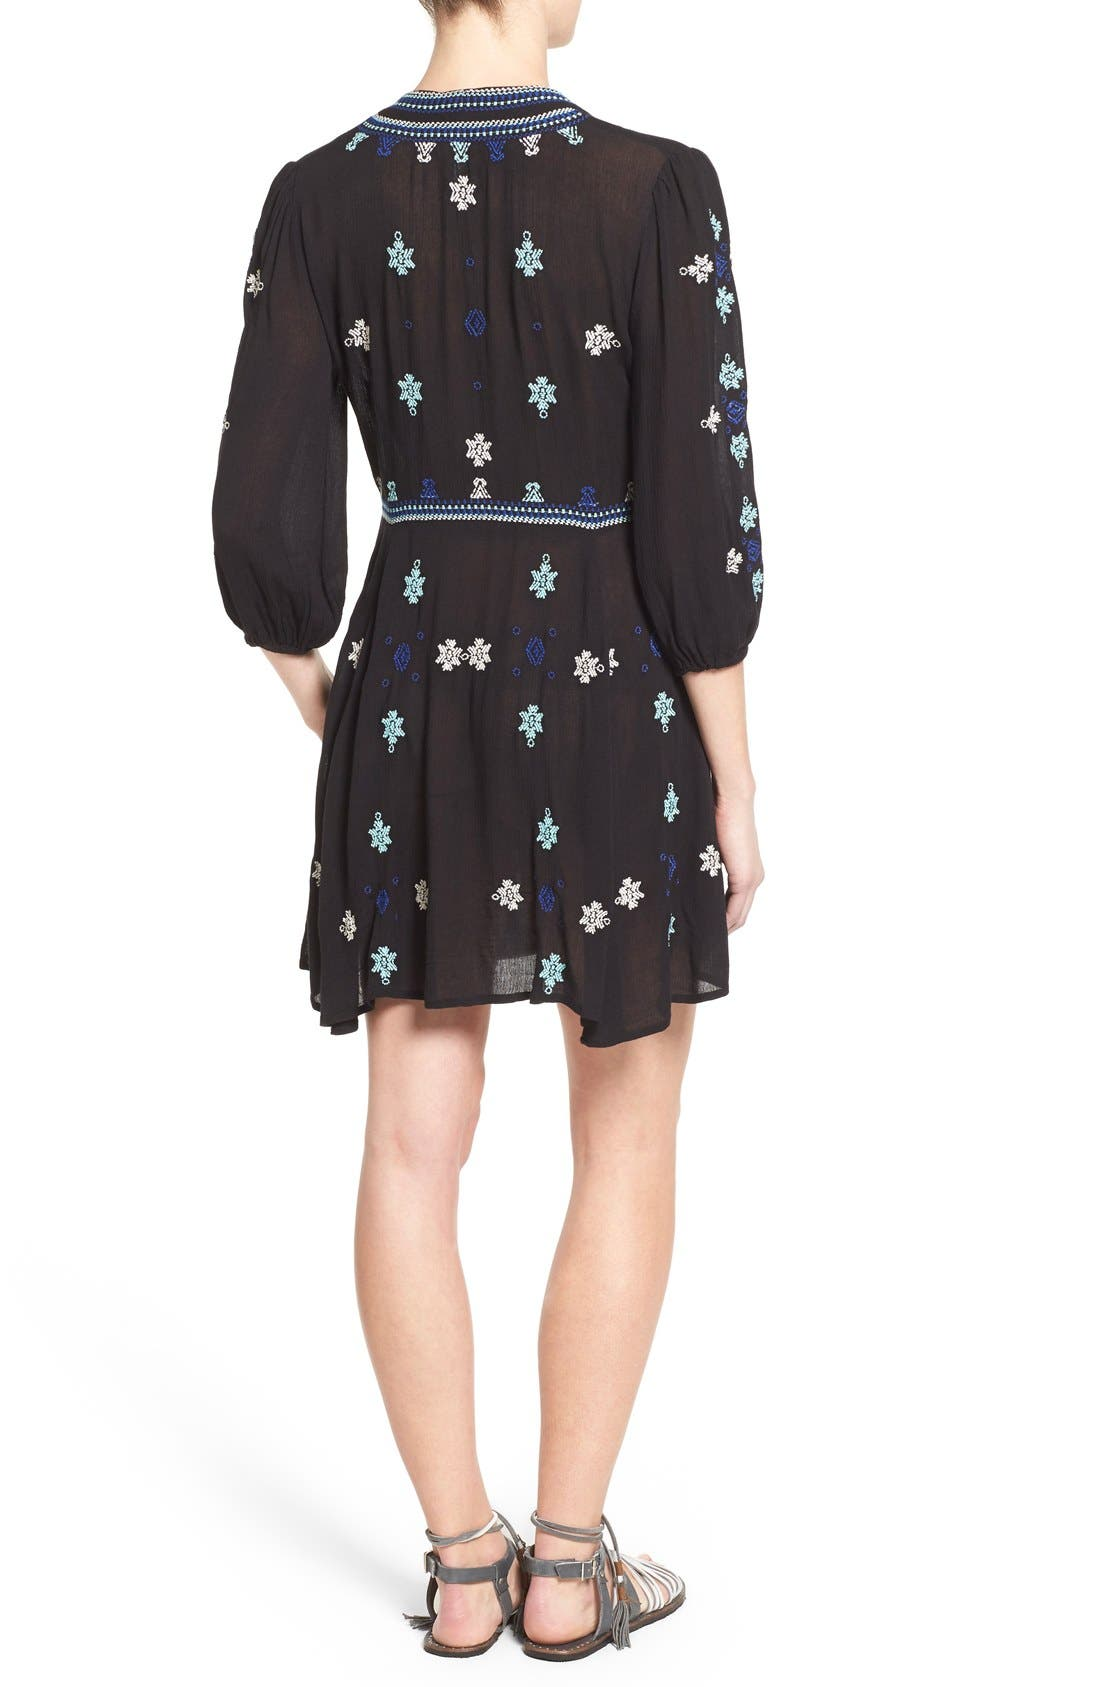 'Star Gazer' Embroidered Tunic Dress,                             Alternate thumbnail 4, color,                             001